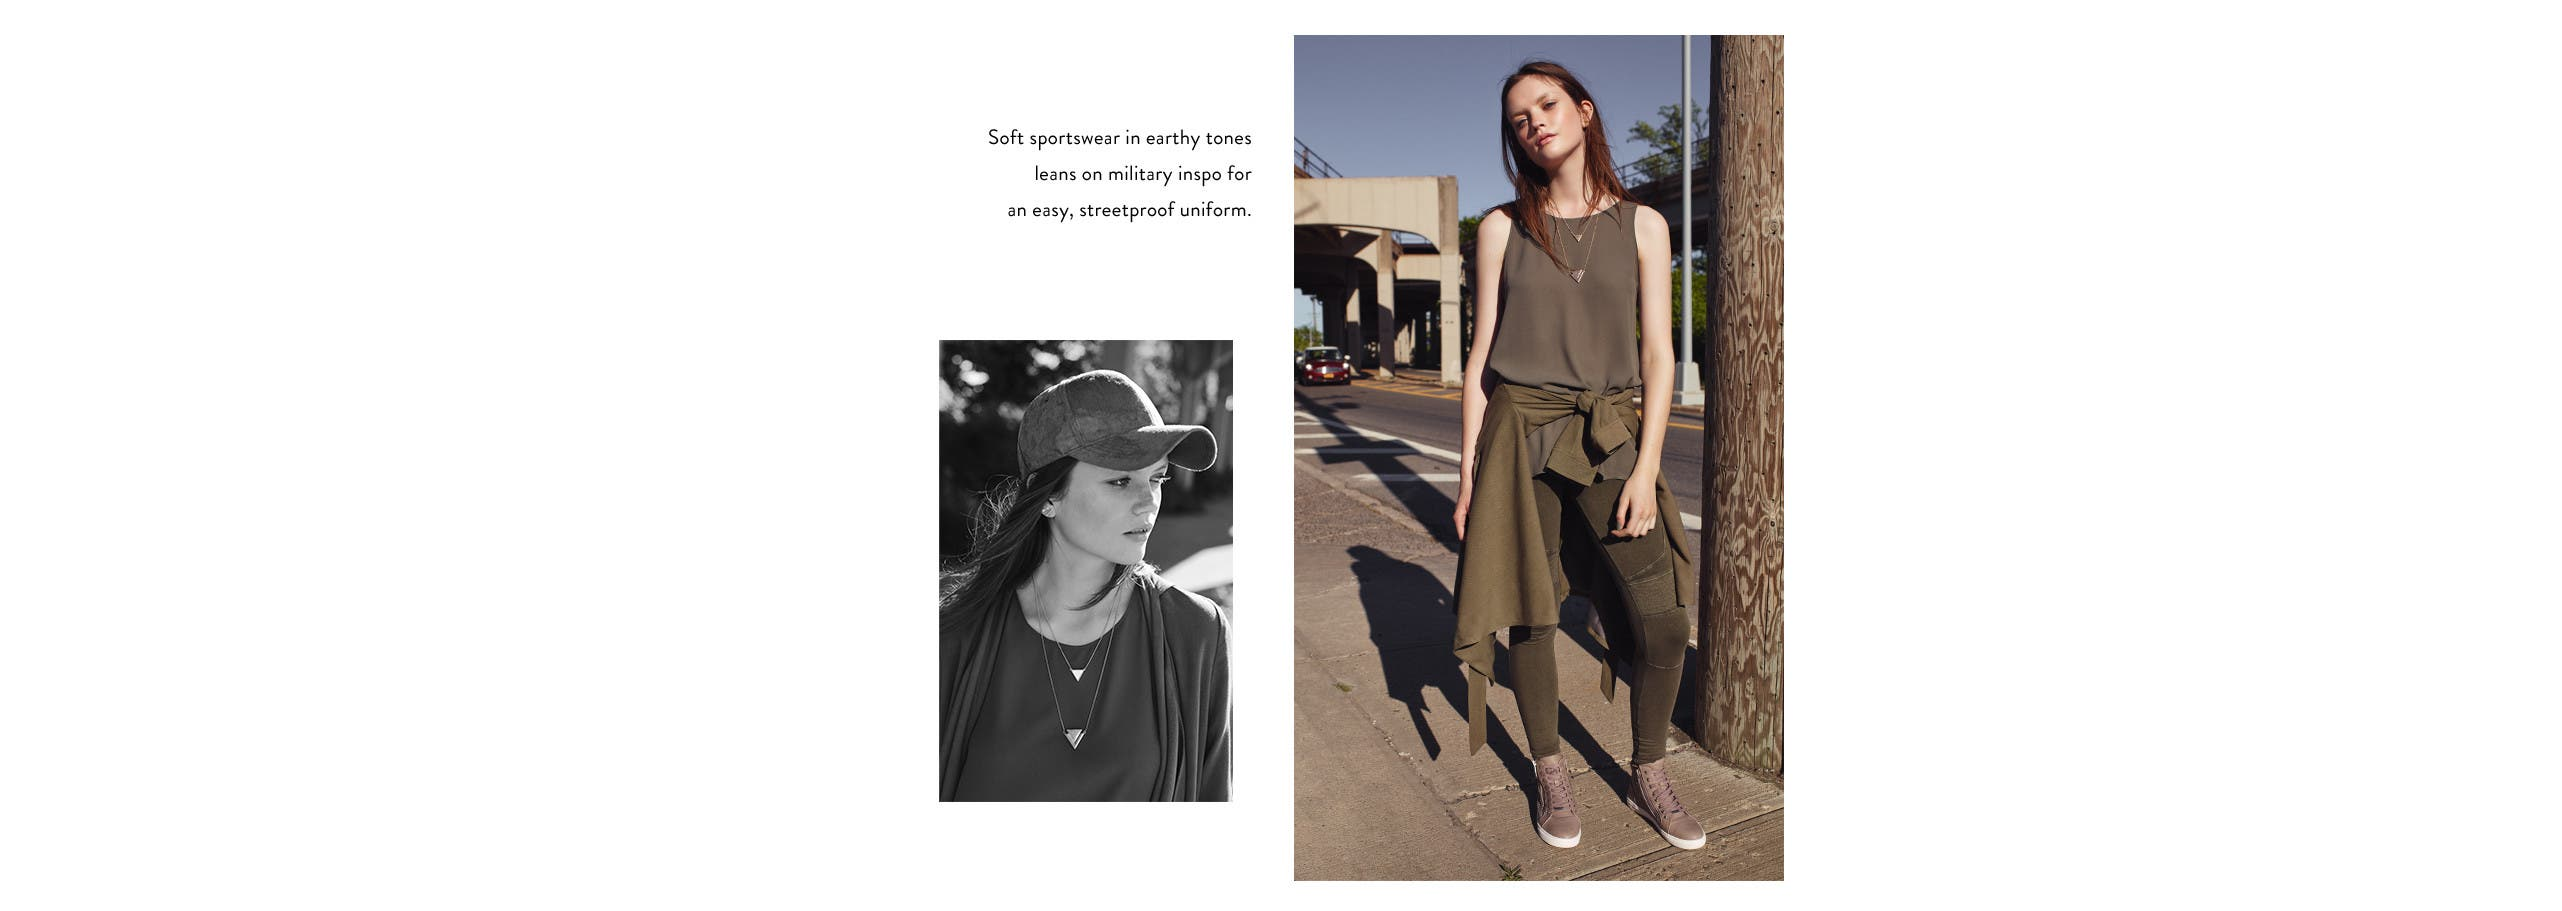 At ease, ladies: military-inspired clothing and more.